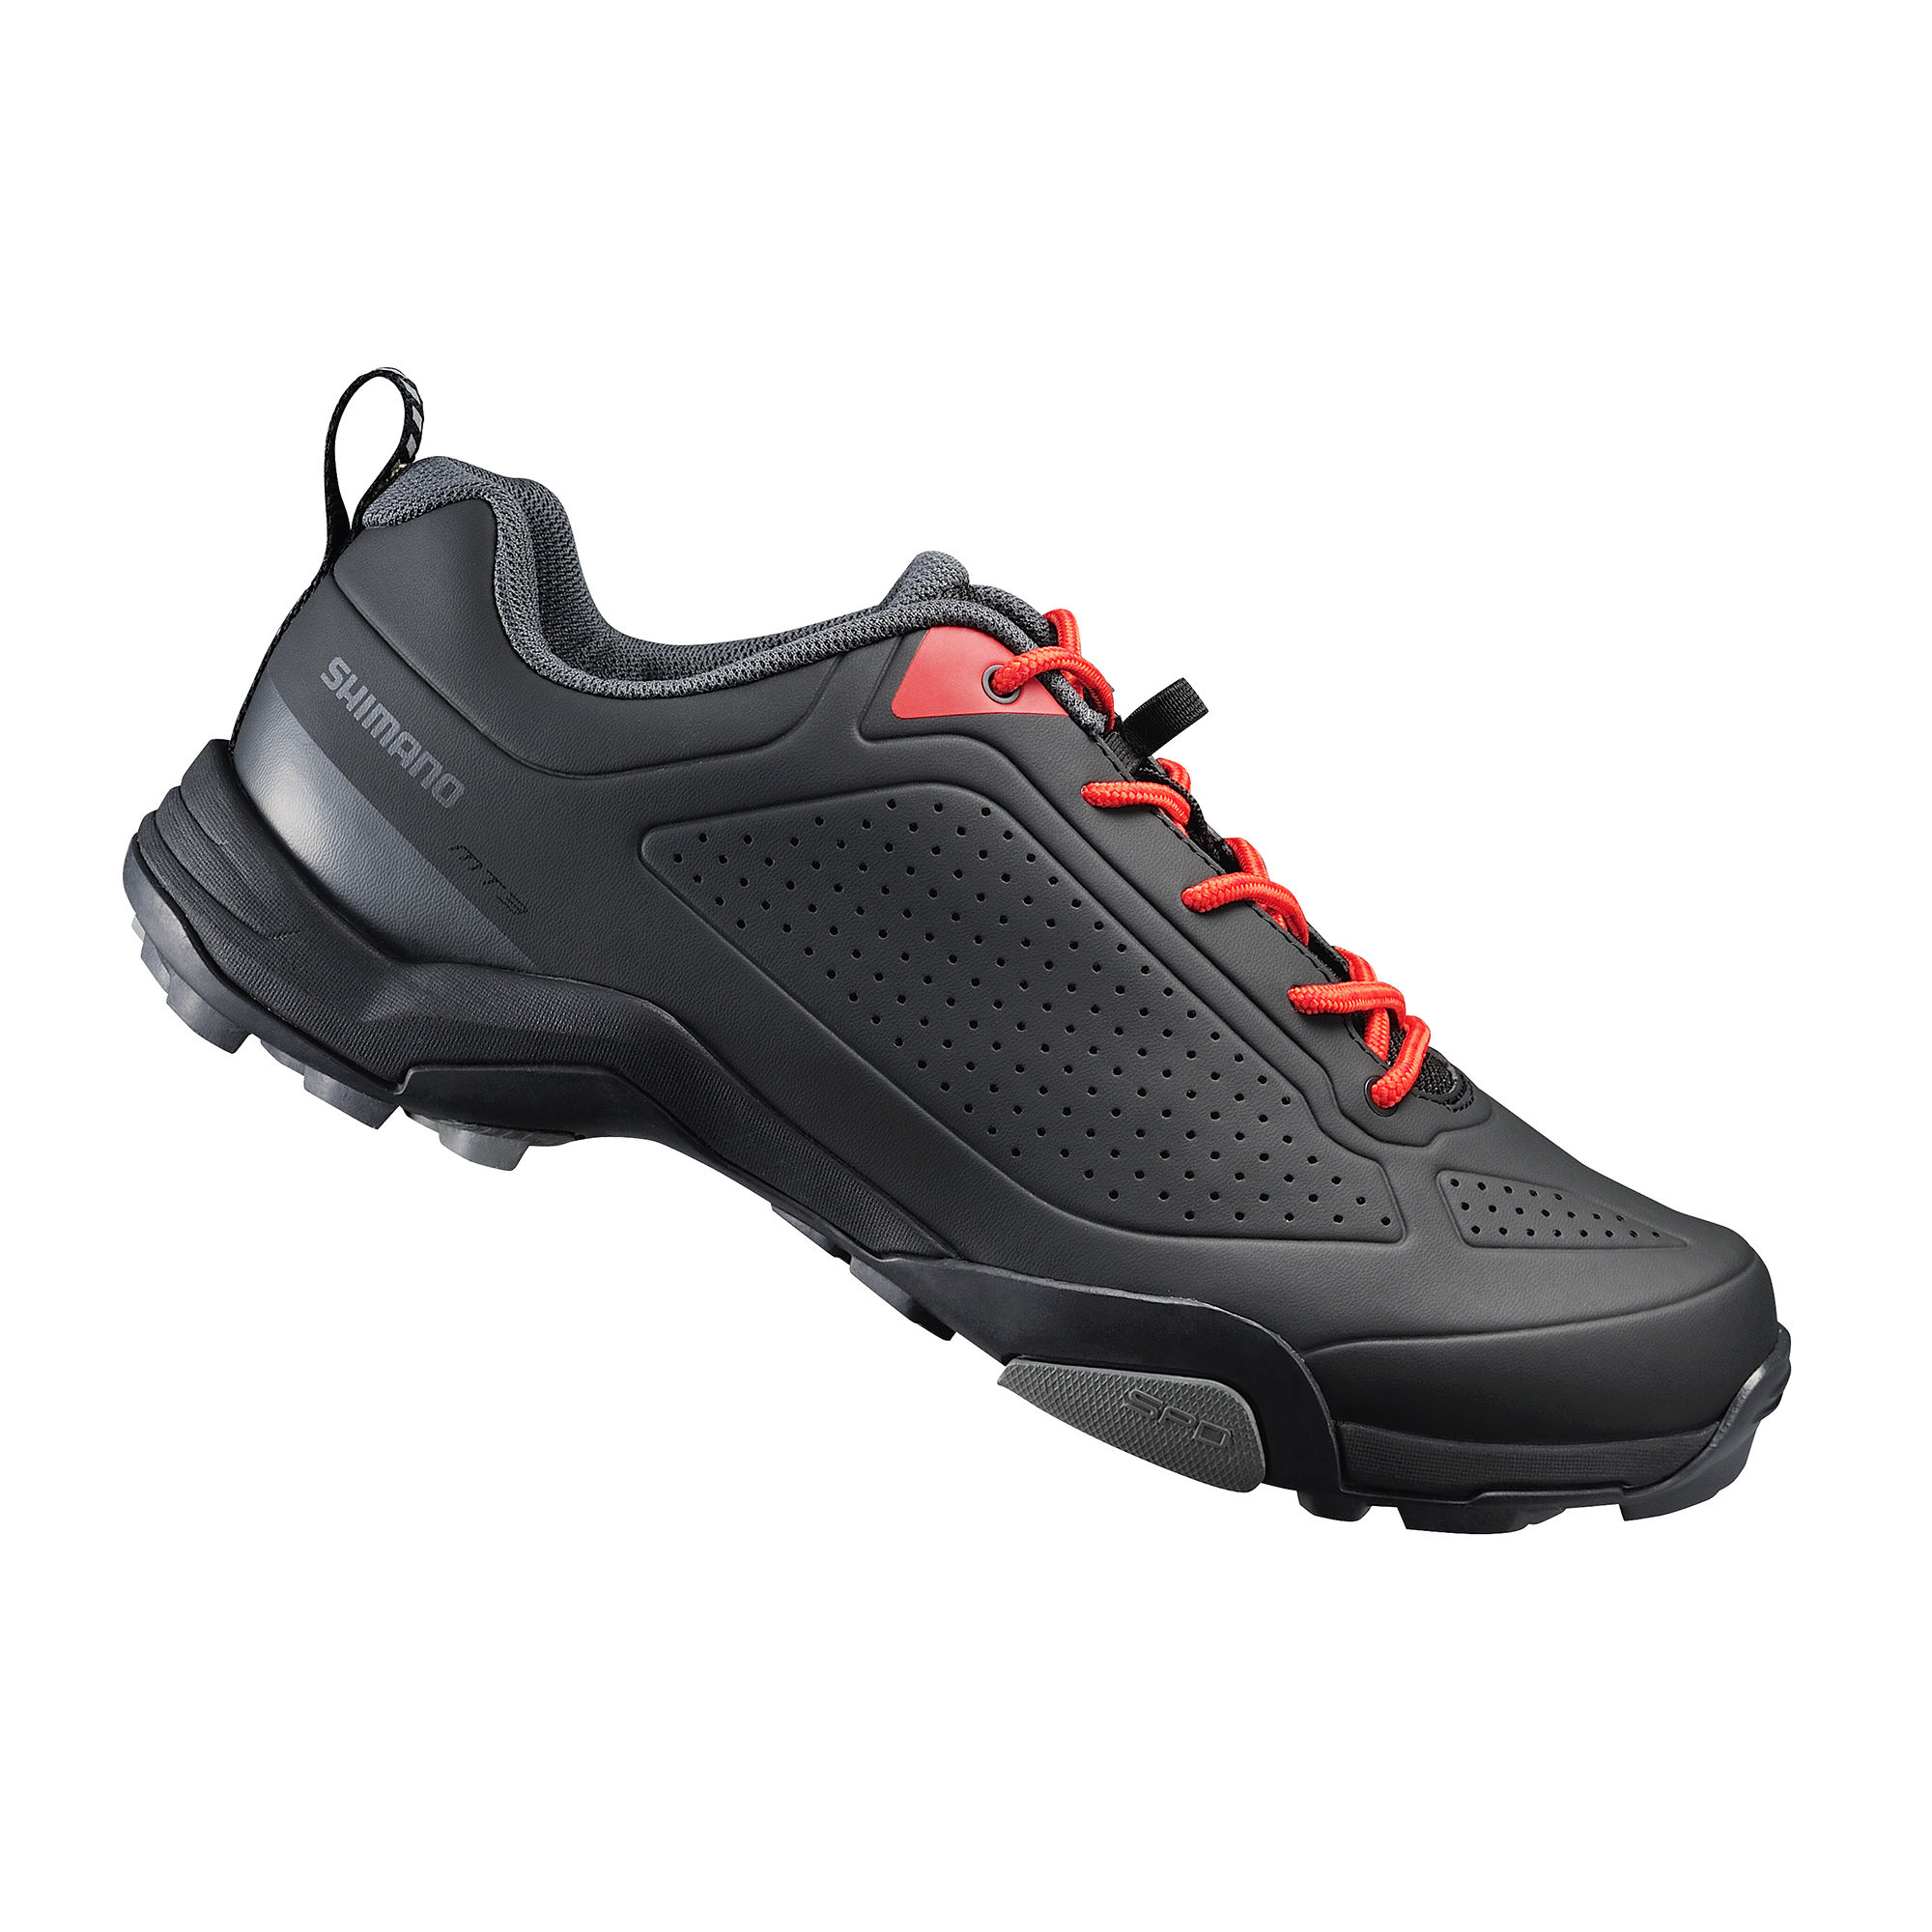 14c15234335 Wiggle Cycle To Work | Shimano MT3 SPD Touring Shoes | Cycling Shoes